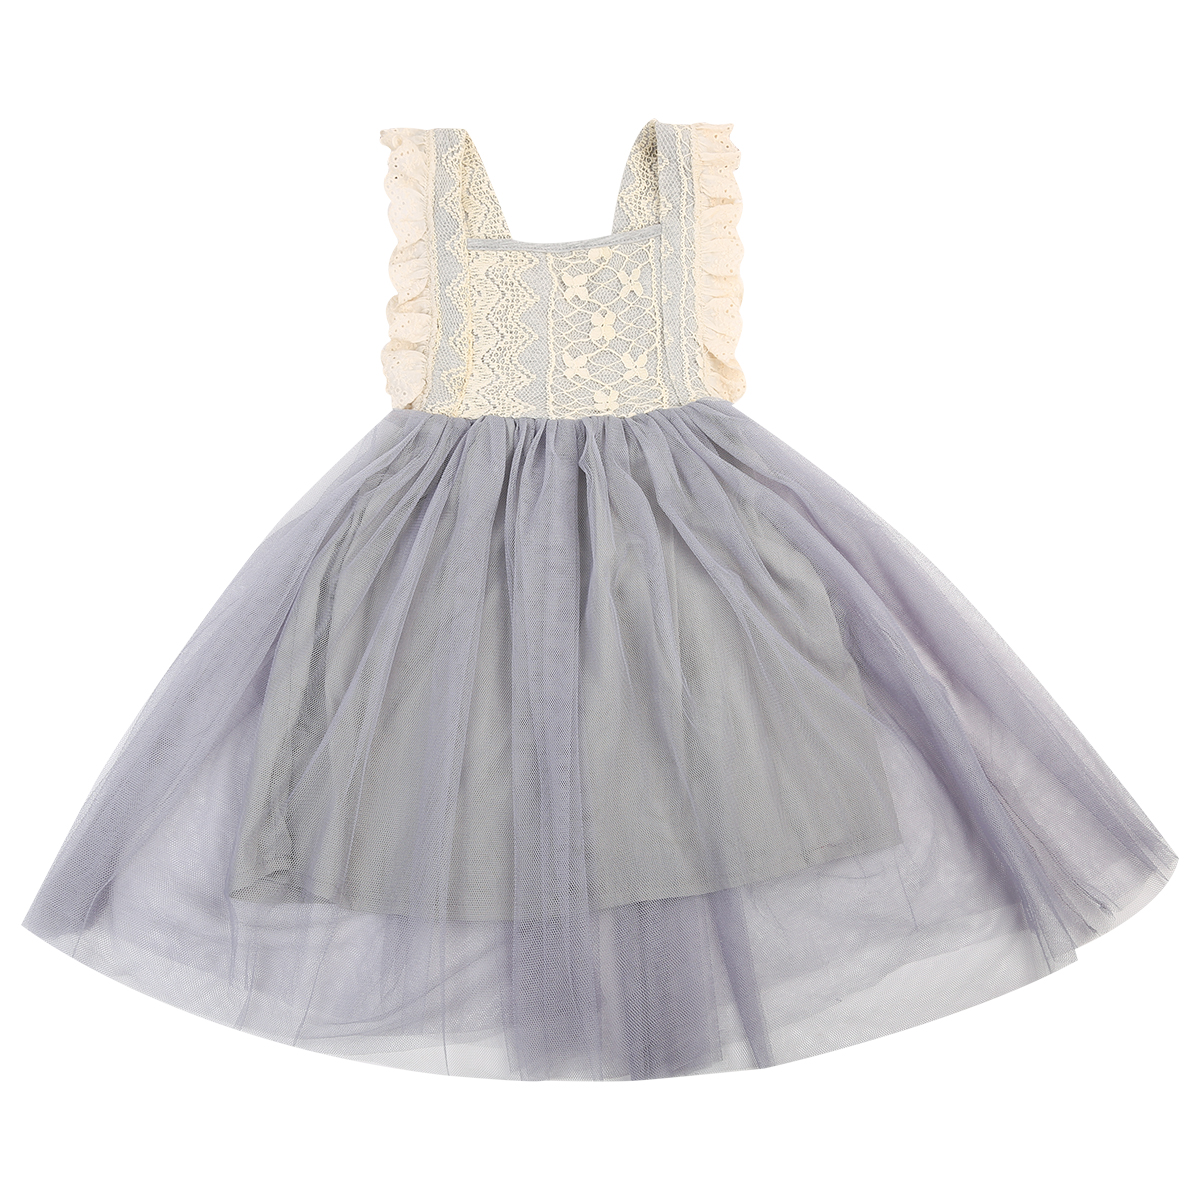 Flower Girl Clothing Princess Sequins Dress Toddler Baby Sleeveless Backless Fancy Party Tutu Dresses Girls toddler kids baby girls sleeveless orange cute cartoon back zipper fox fancy dress princess party tulle tutu dresses